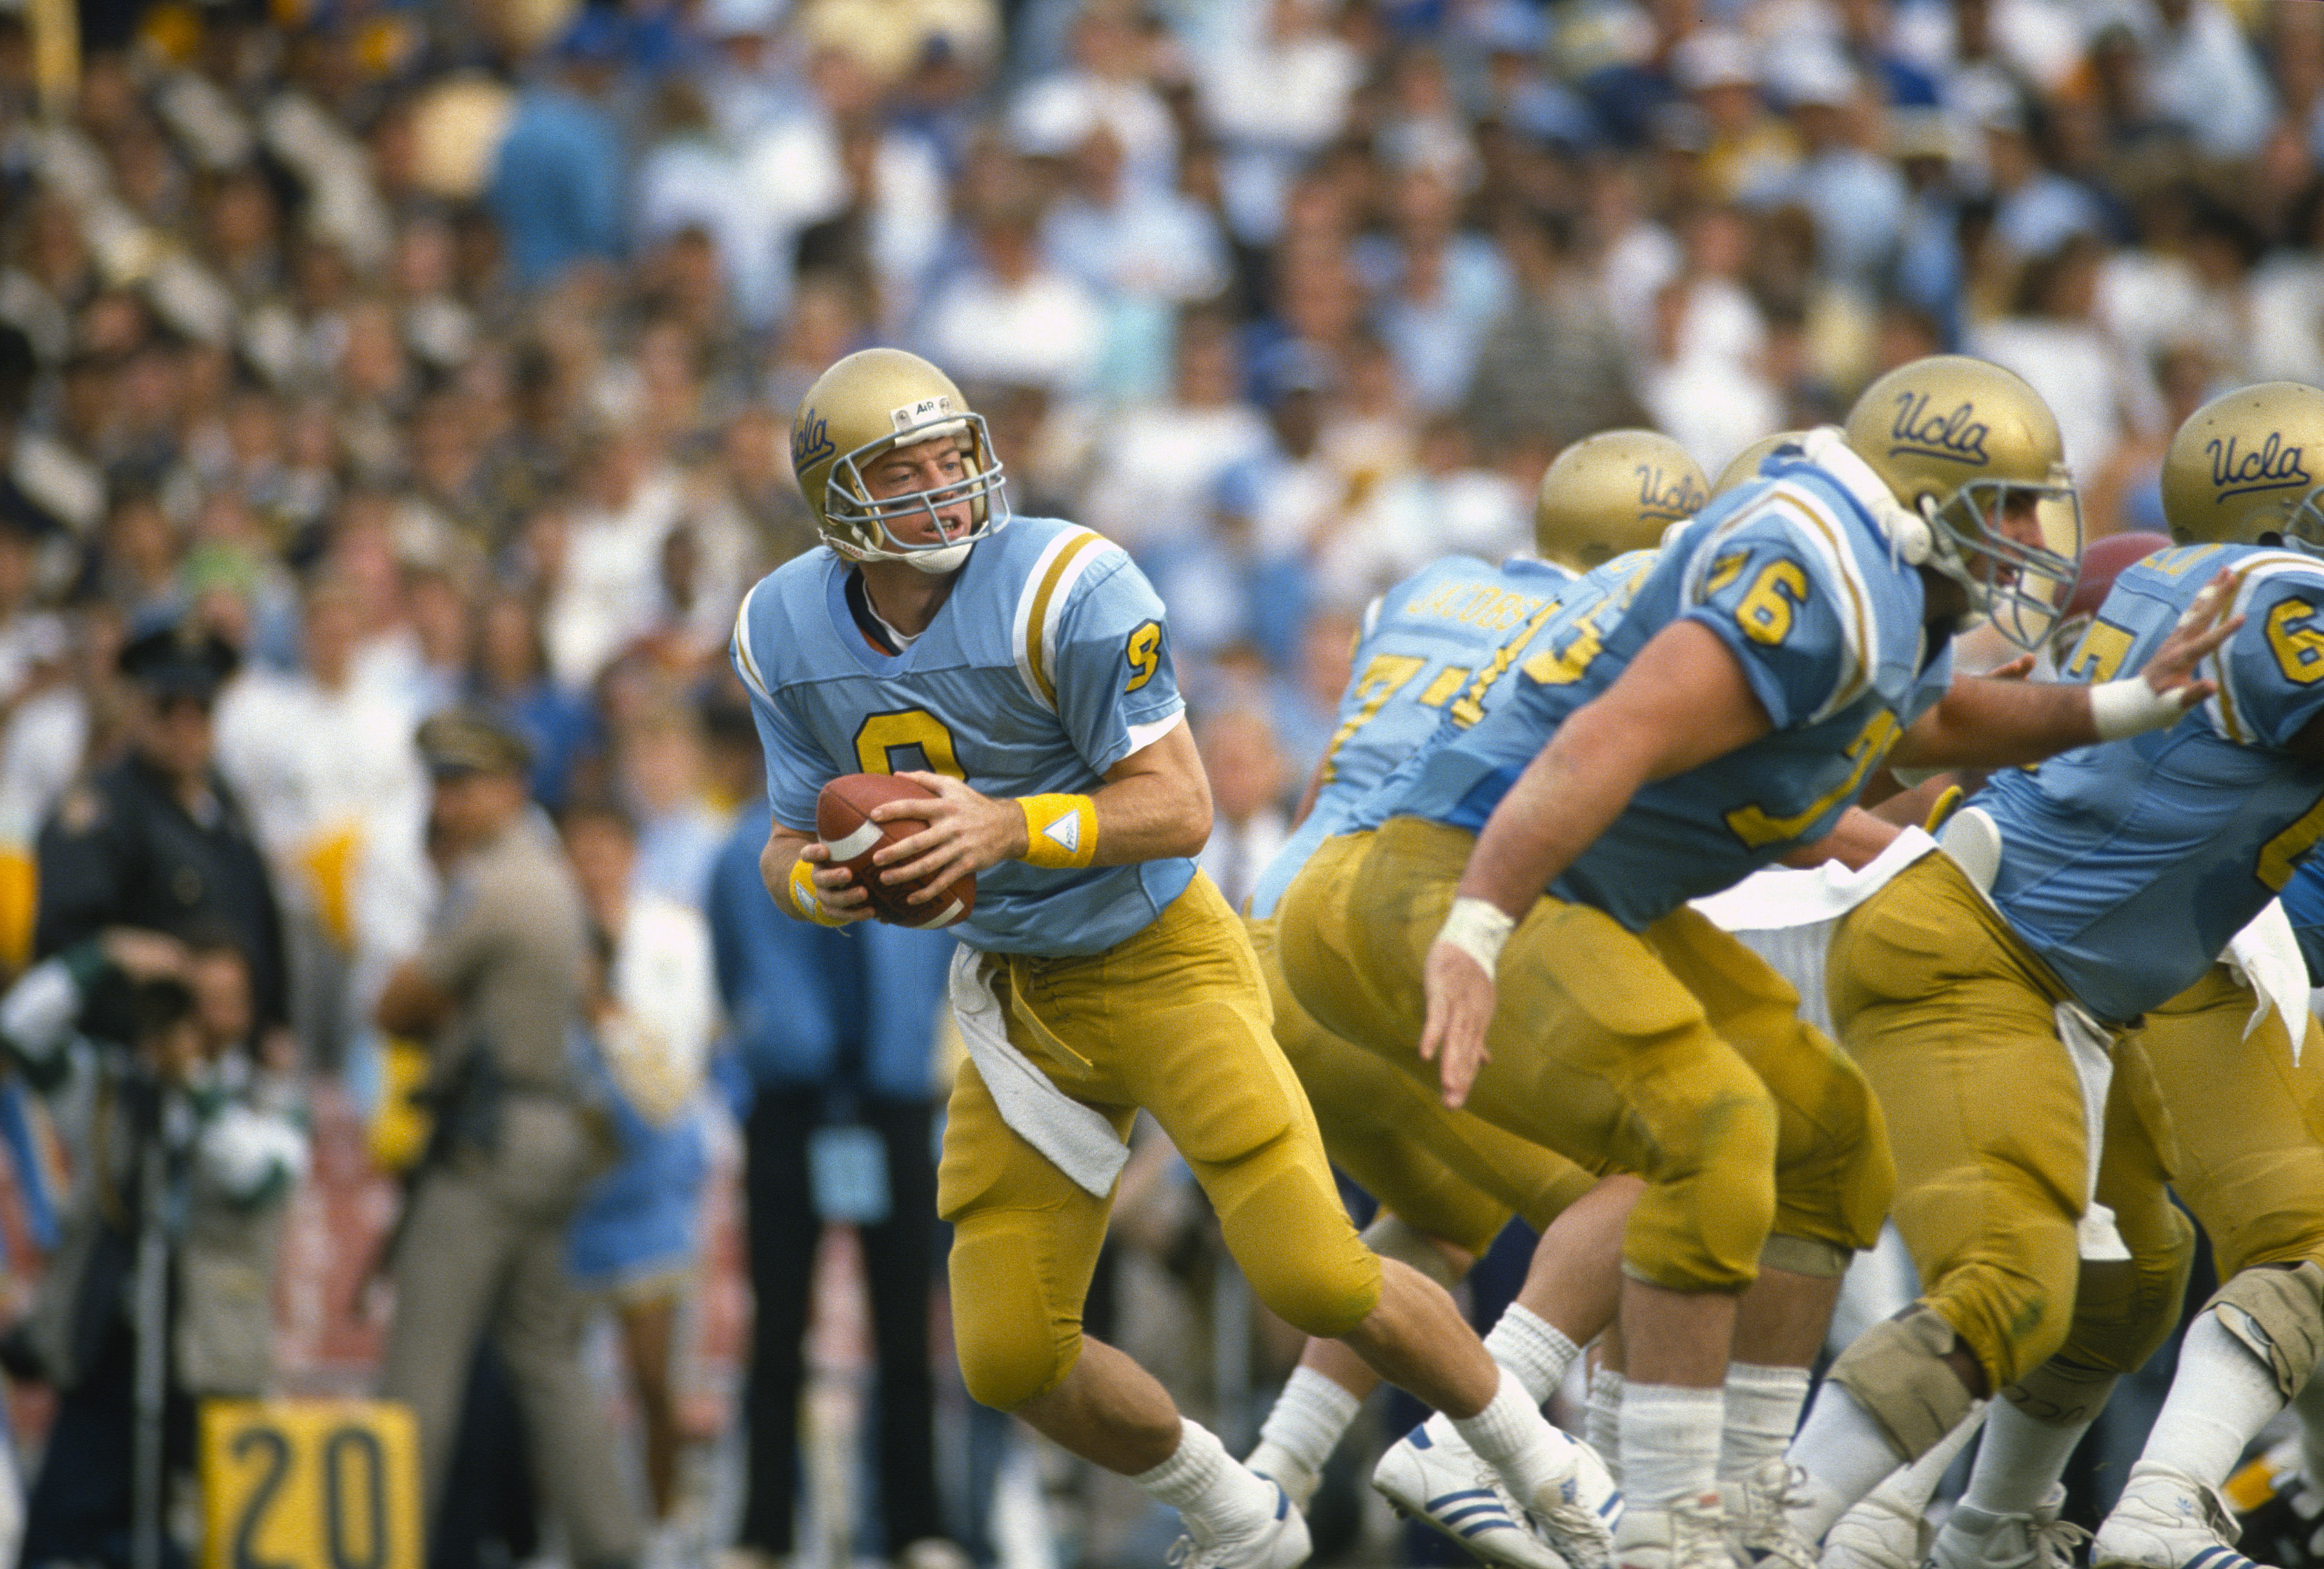 Troy Aikman Just Sent a 'Really Hopeful' Message to UCLA Football: 'Stay the Course Right Now'